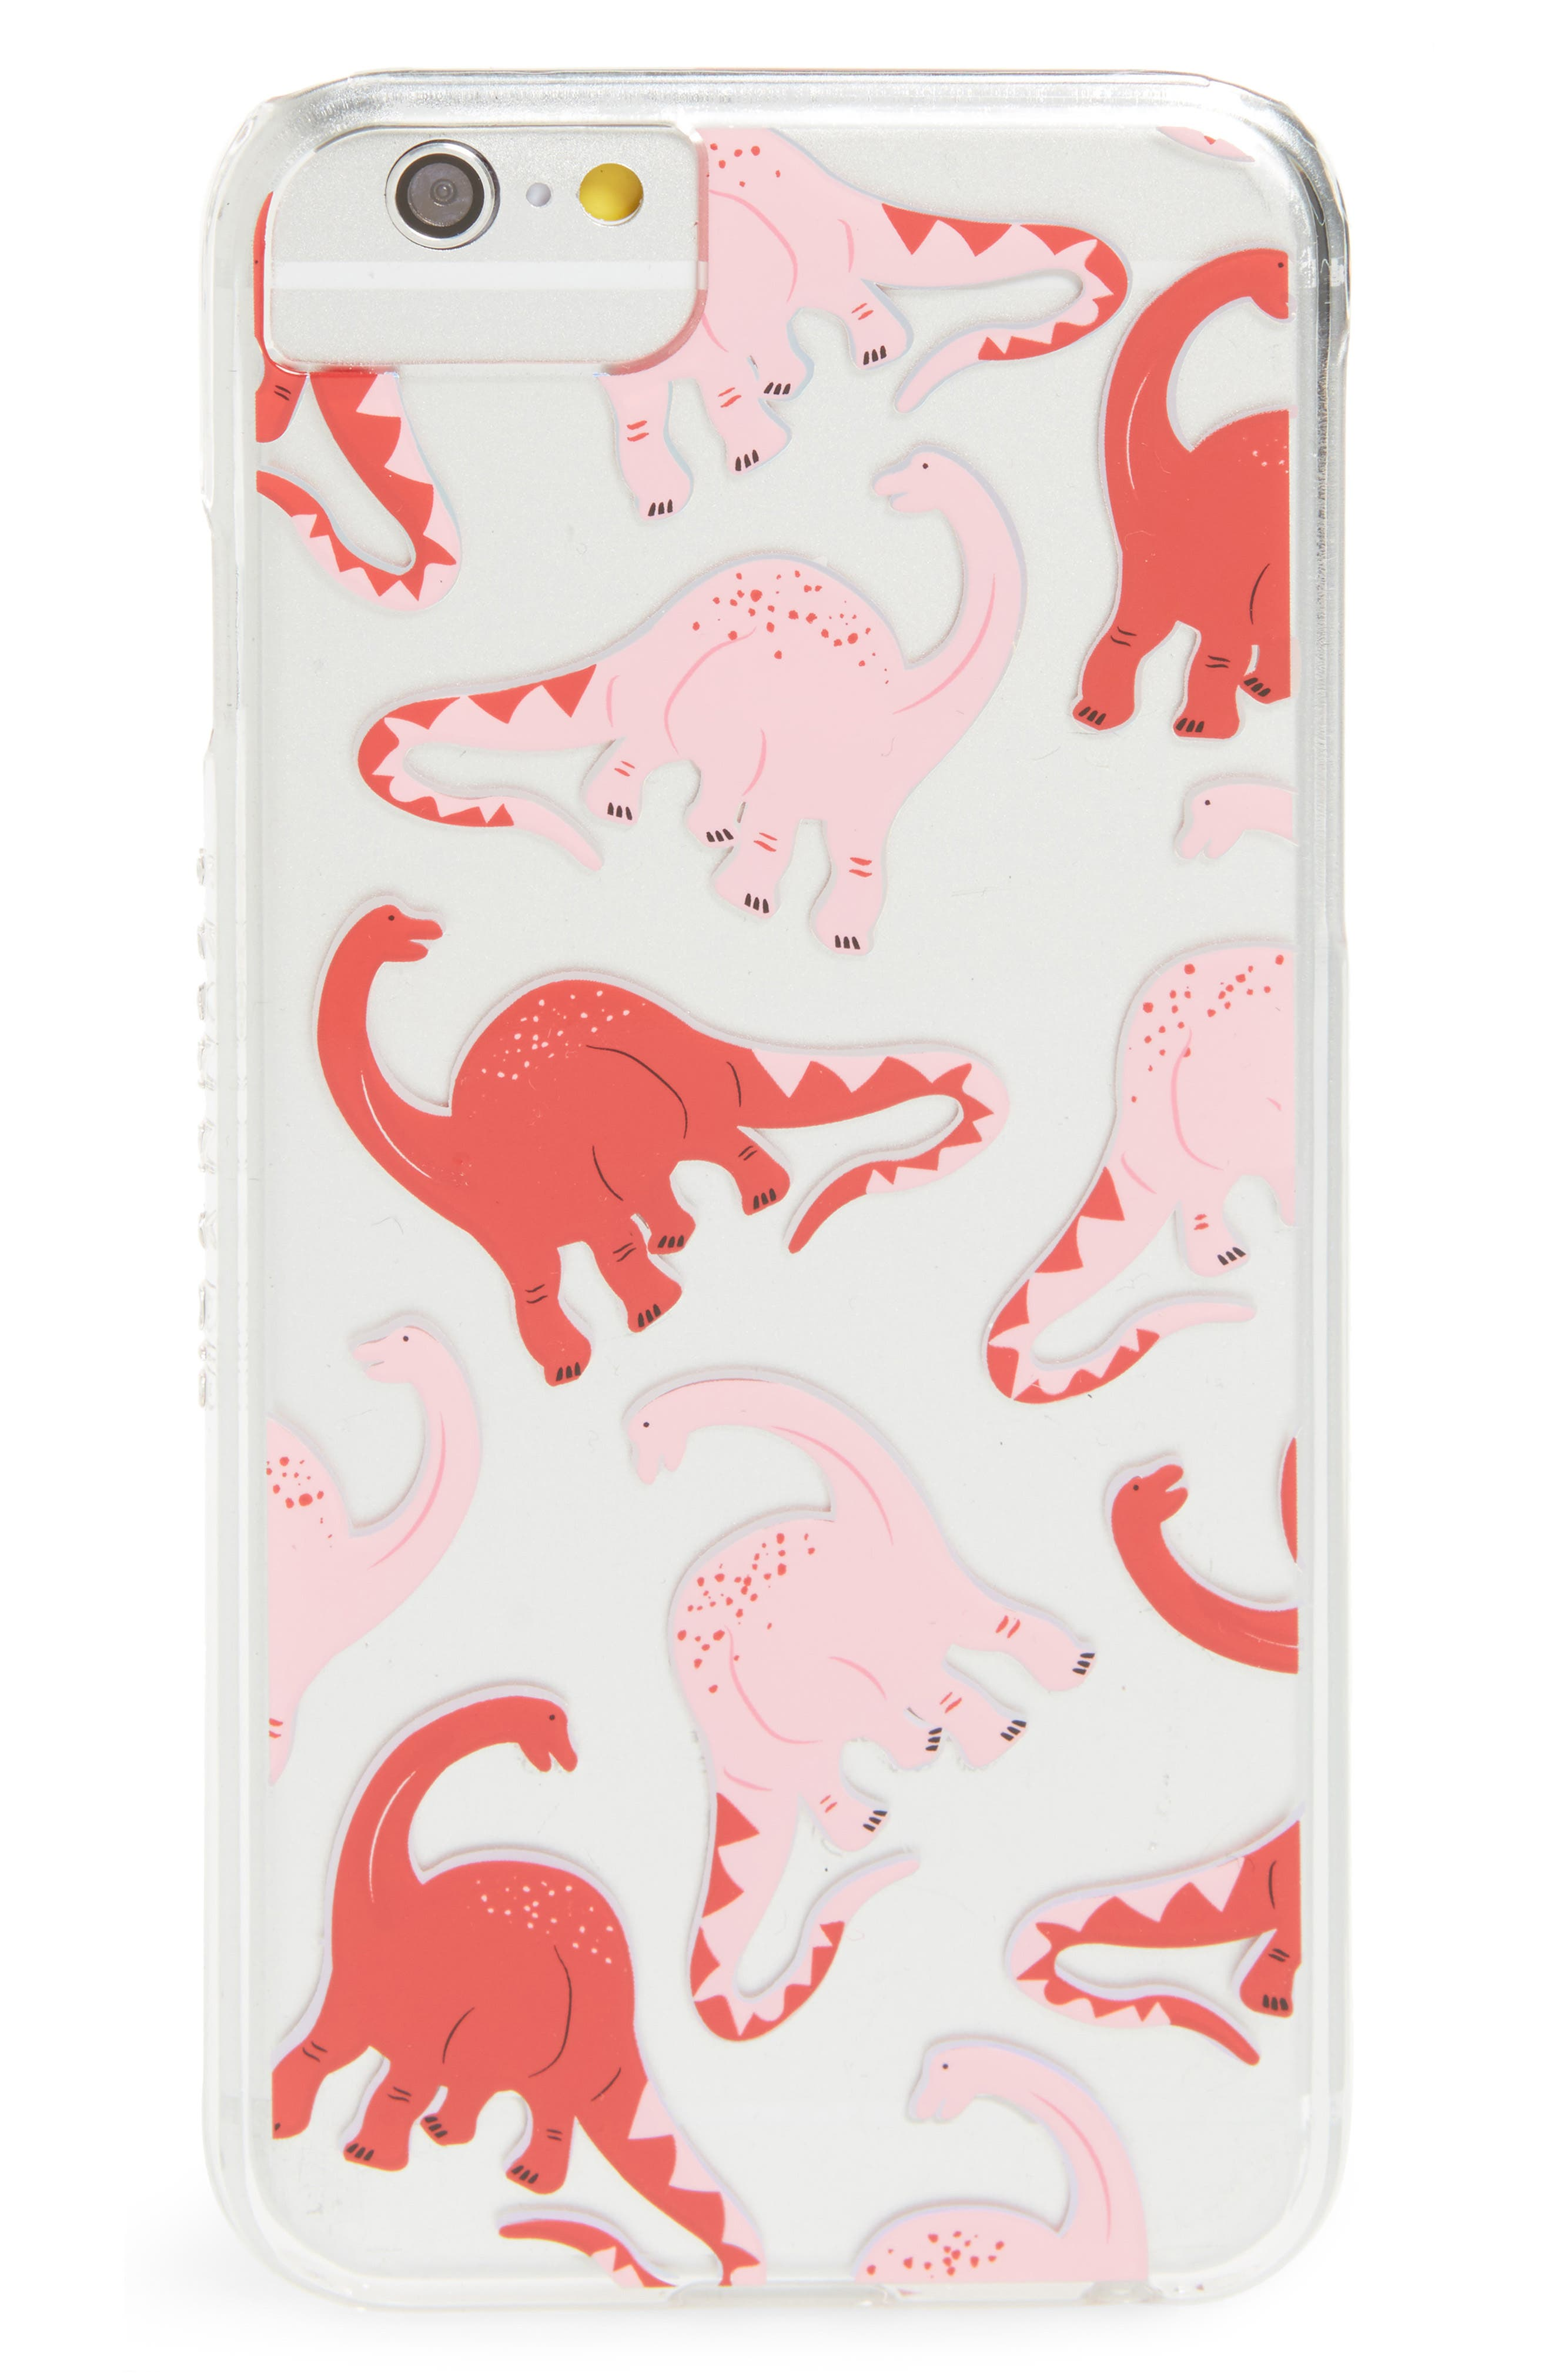 Skinny Dip Pink Dino iPhone 6/6s/7/8 or 6/6s/7/8 Plus Case,                             Main thumbnail 1, color,                             Pink